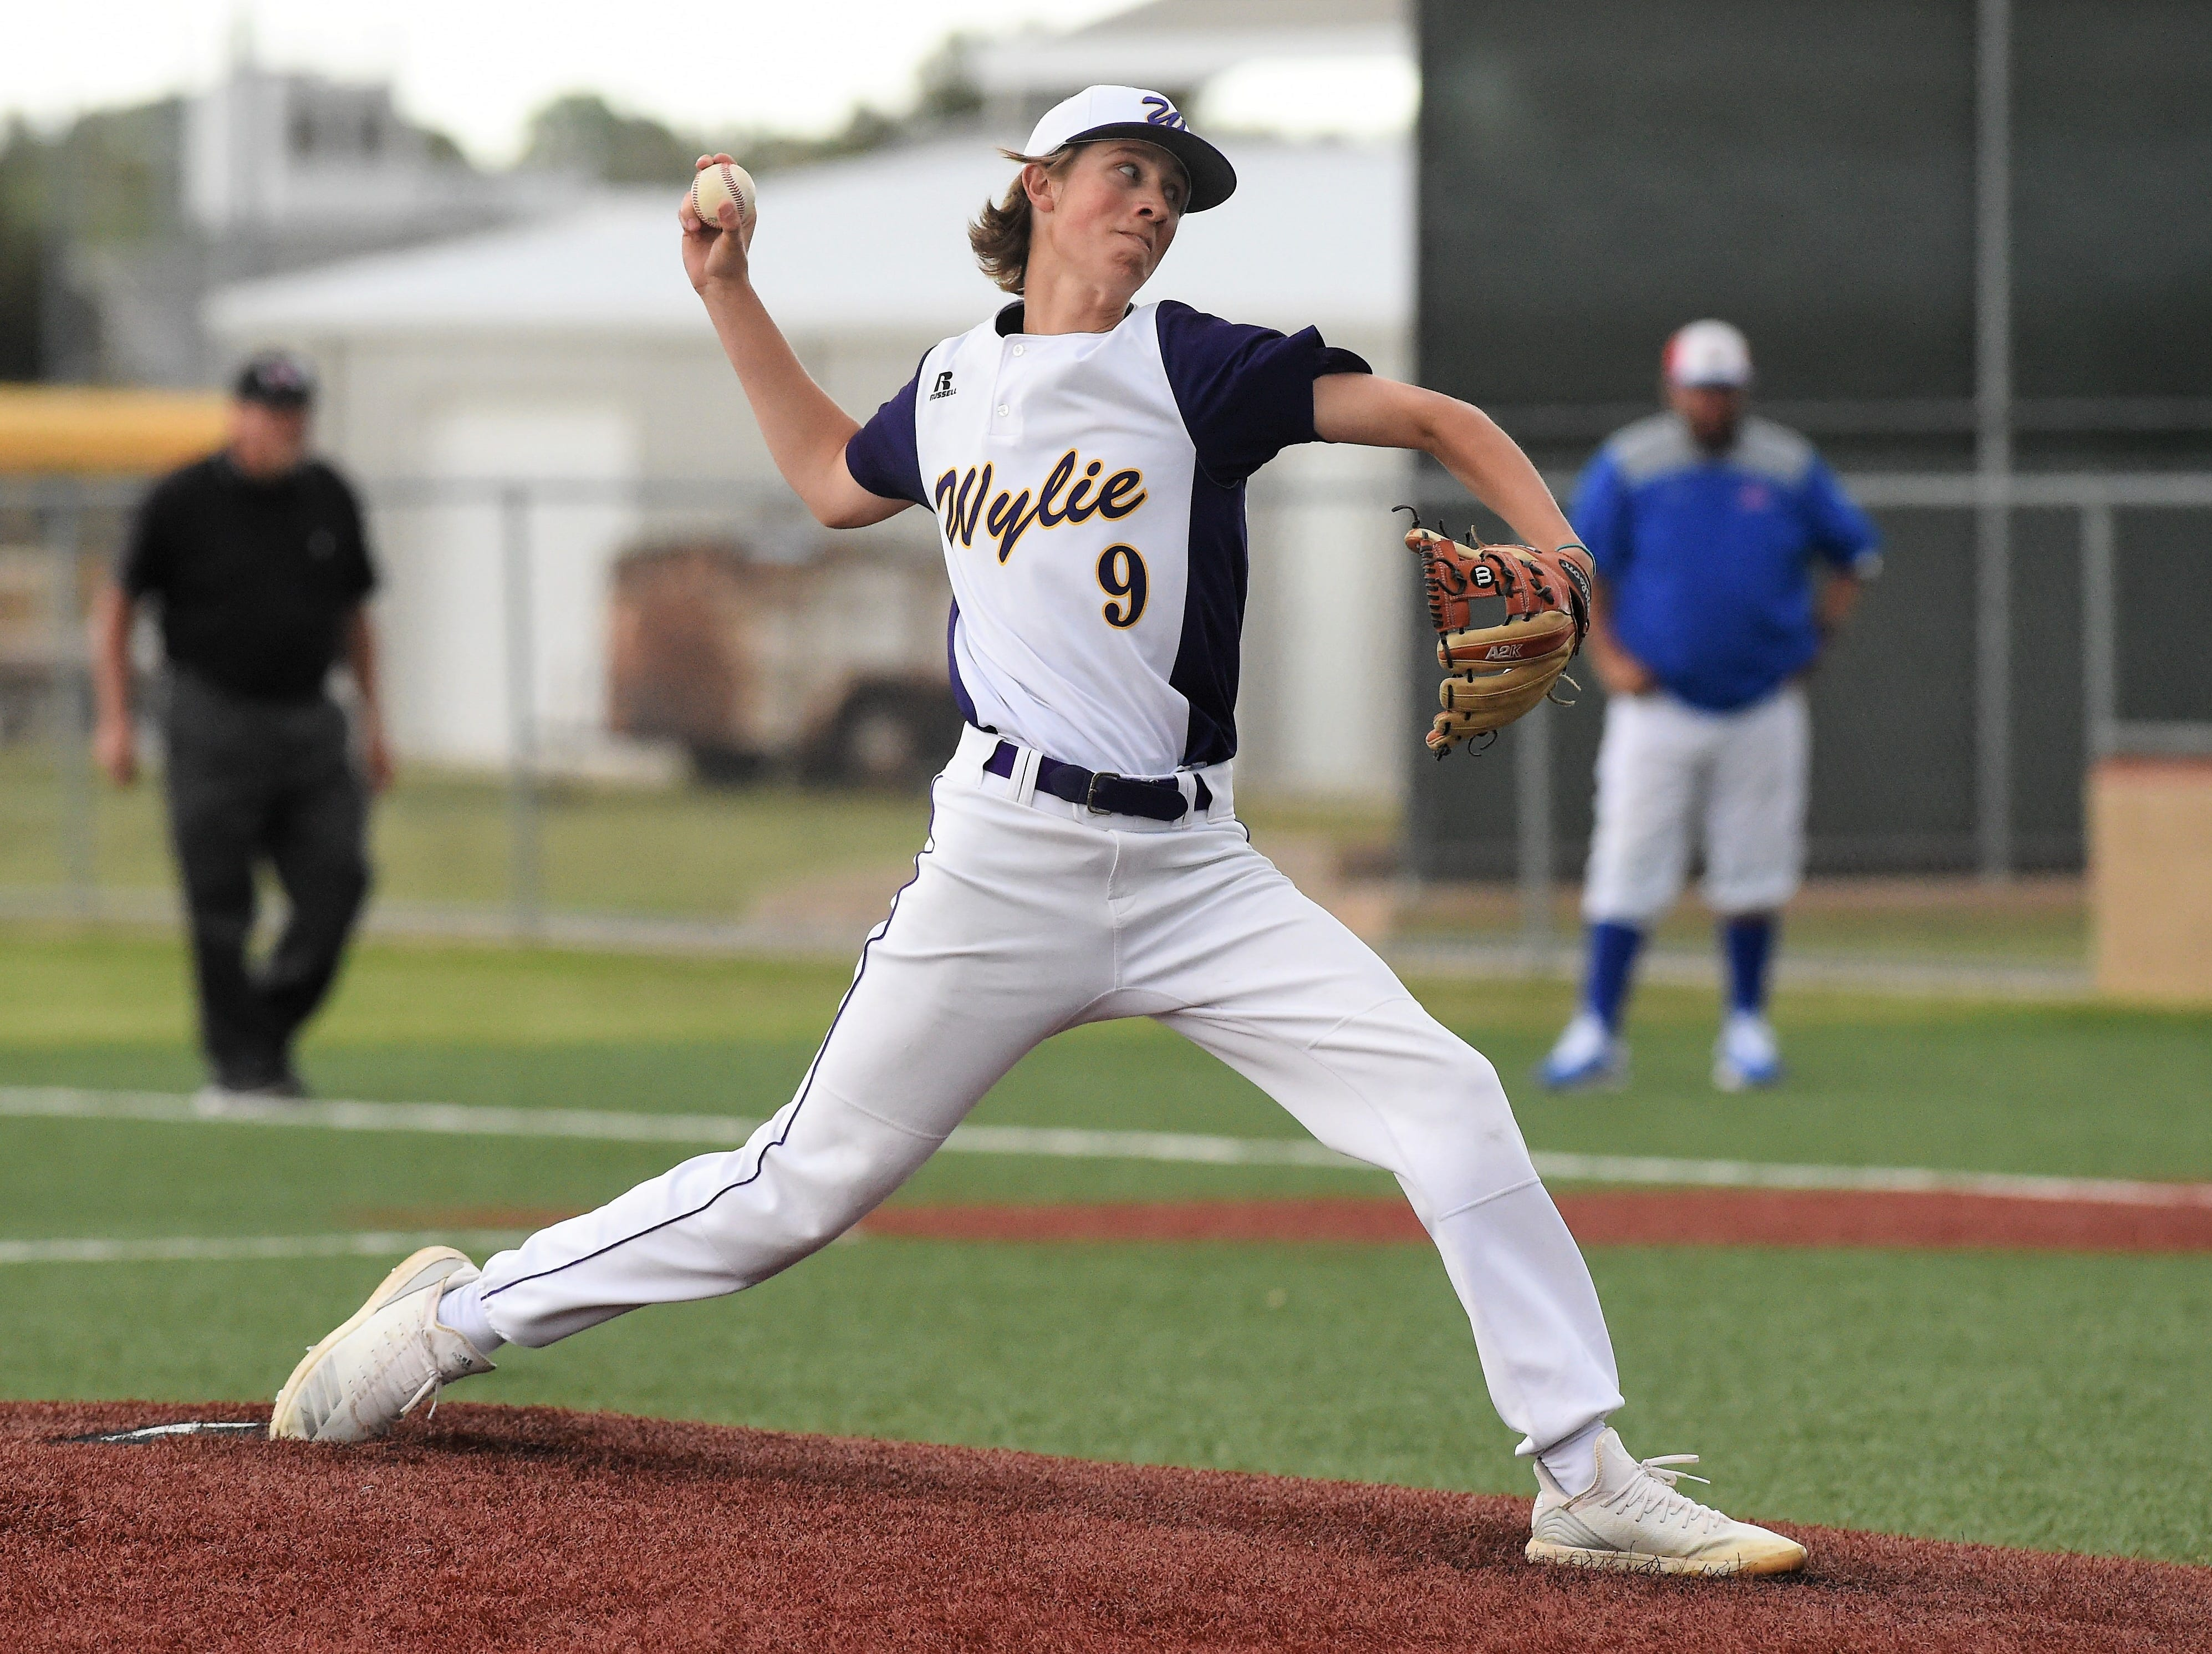 Wylie pitcher Brooks Gay (9) delivers to the plate against Cooper at Bulldog Field on Friday, April 12, 2019. Gay allowed two hits and struck out three in six innings of work.